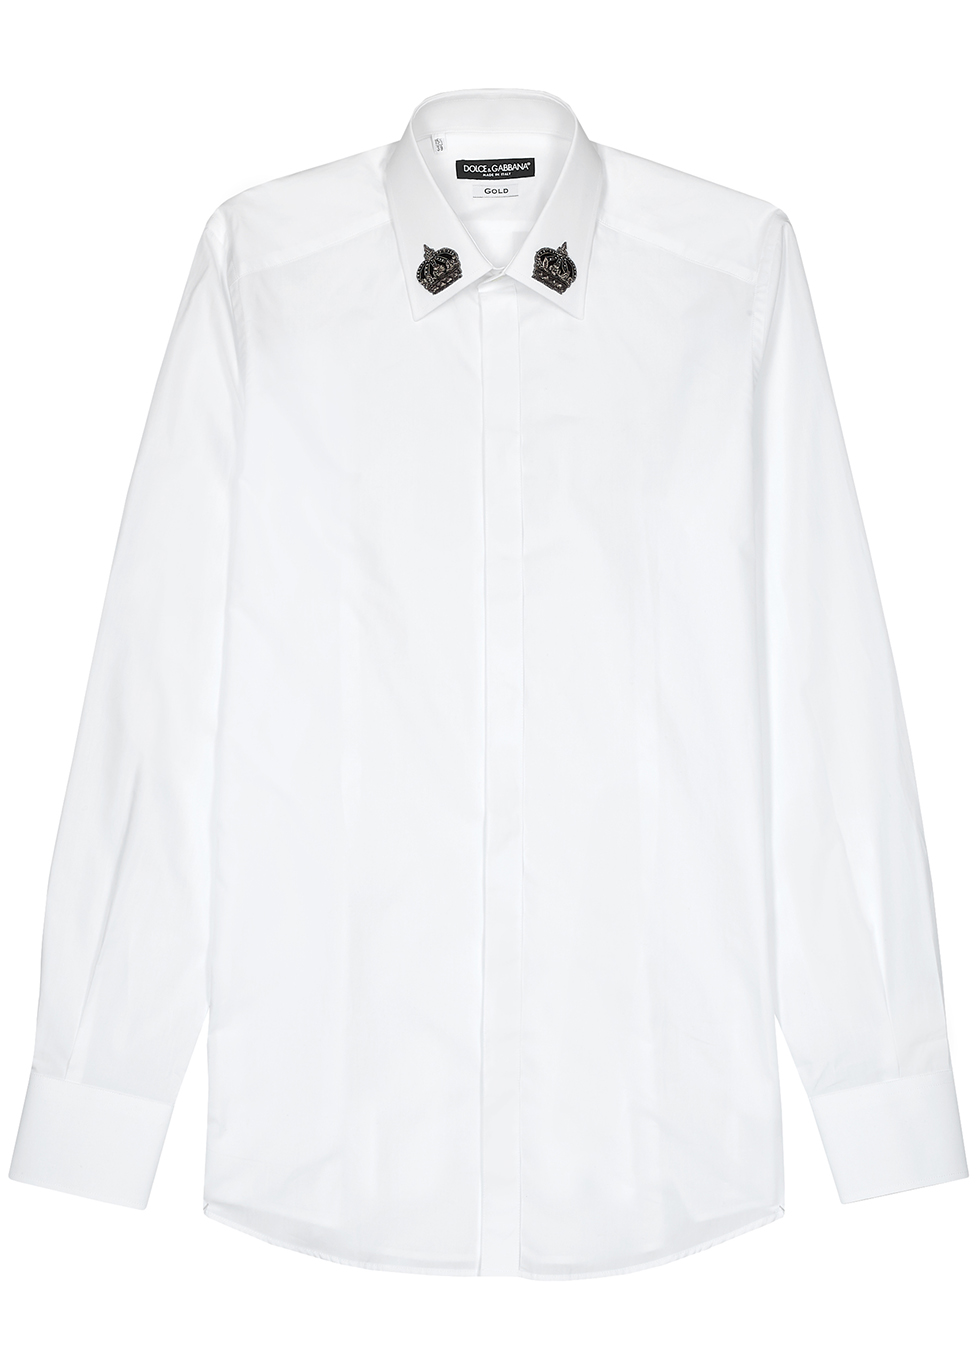 White crown-embroidered cotton shirt